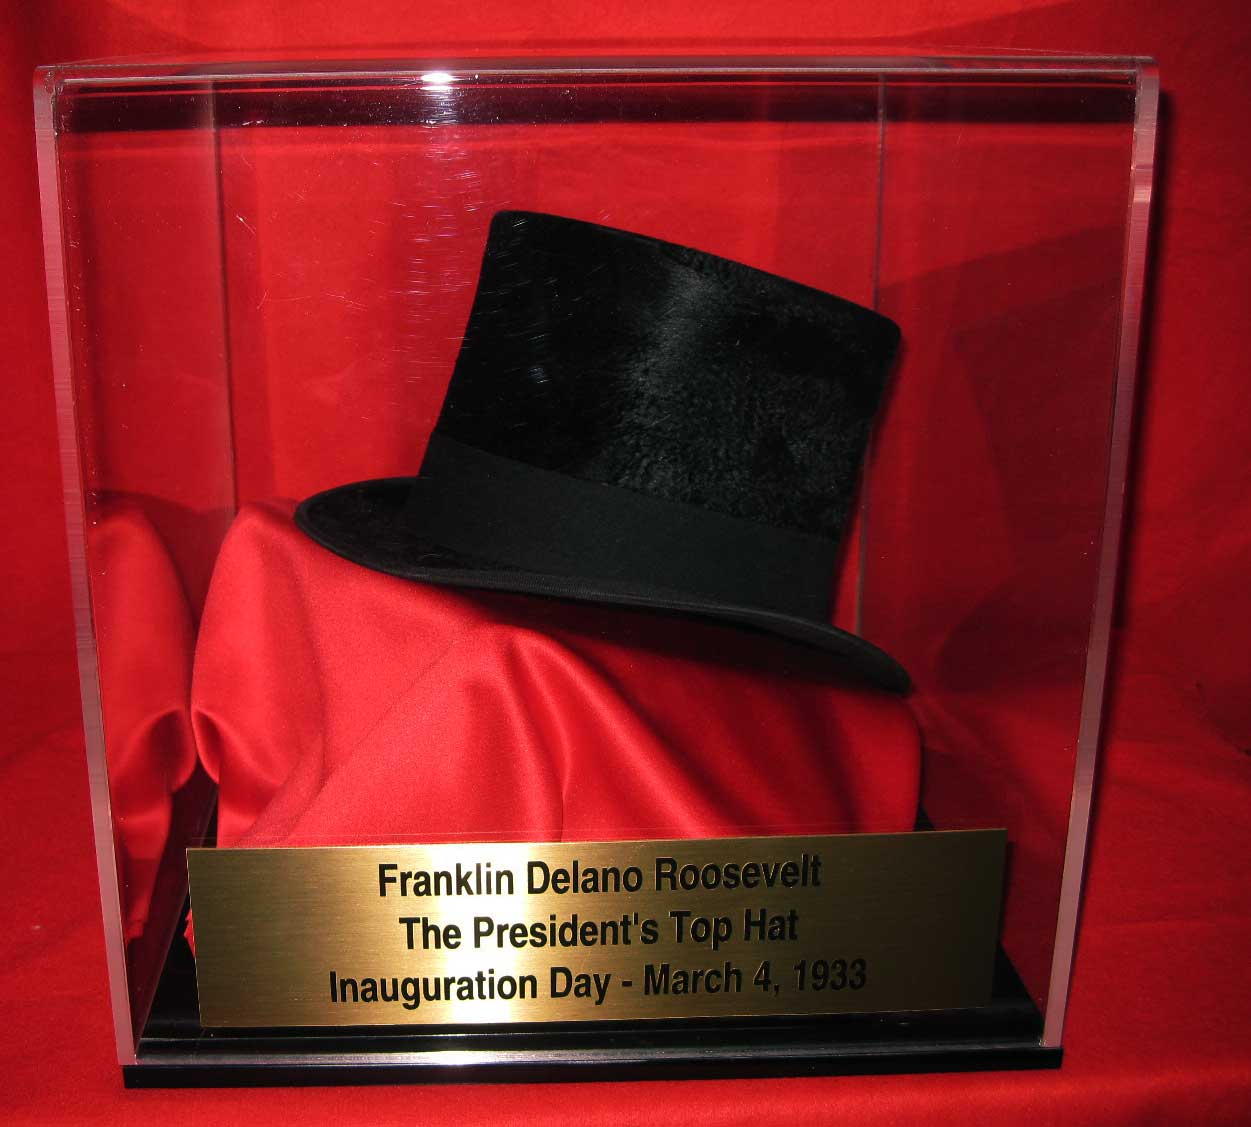 FDR's top hat